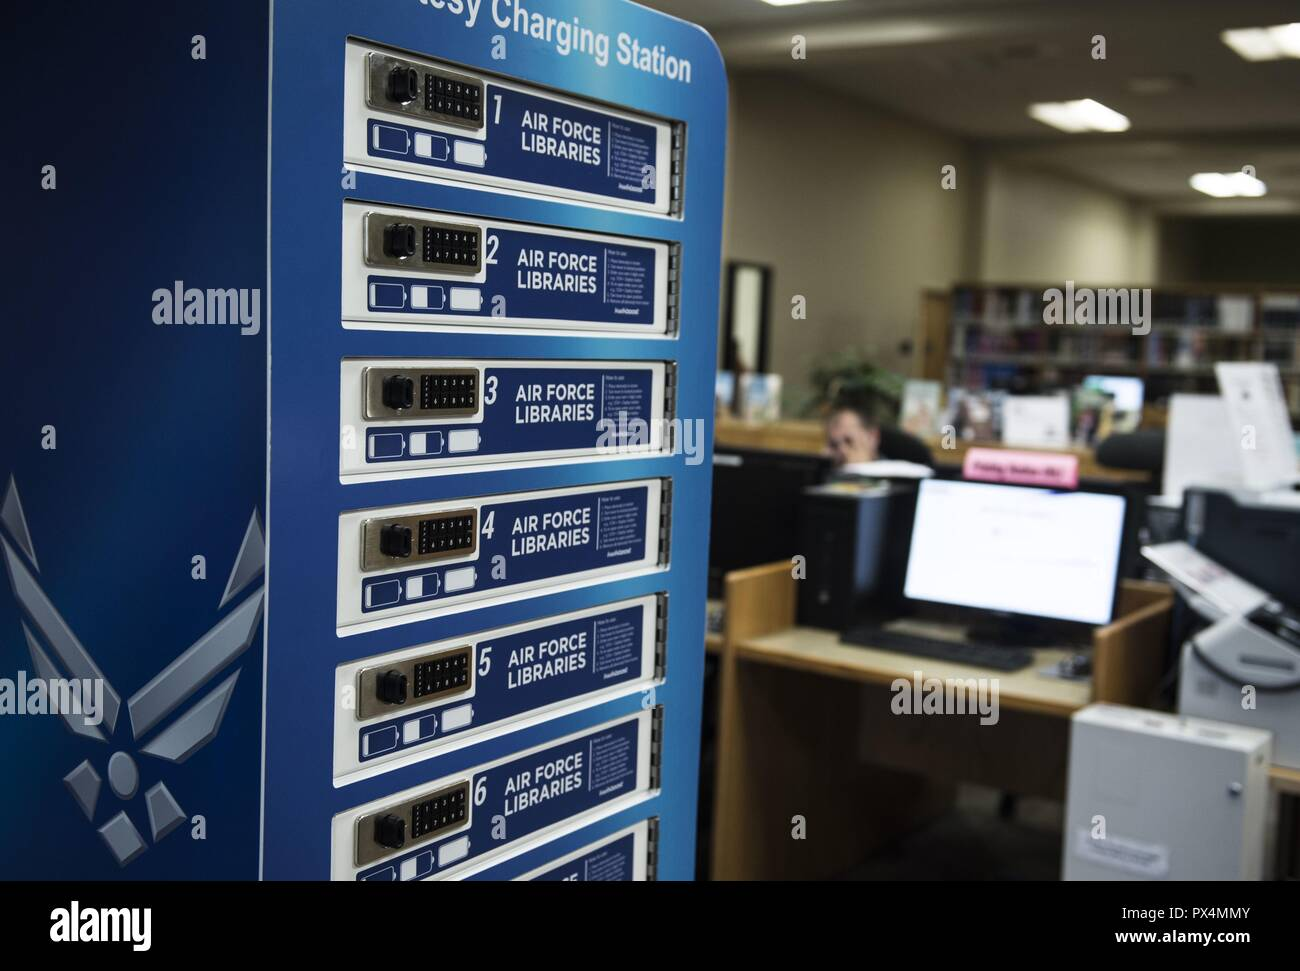 10-port charging station in the McElveen Information and Learning Center at Shaw Air Force Base, South Carolina, August 13, 2018. Image courtesy Senior Airman Christopher Maldonado / 20th Fighter Wing Public Affairs. () - Stock Image